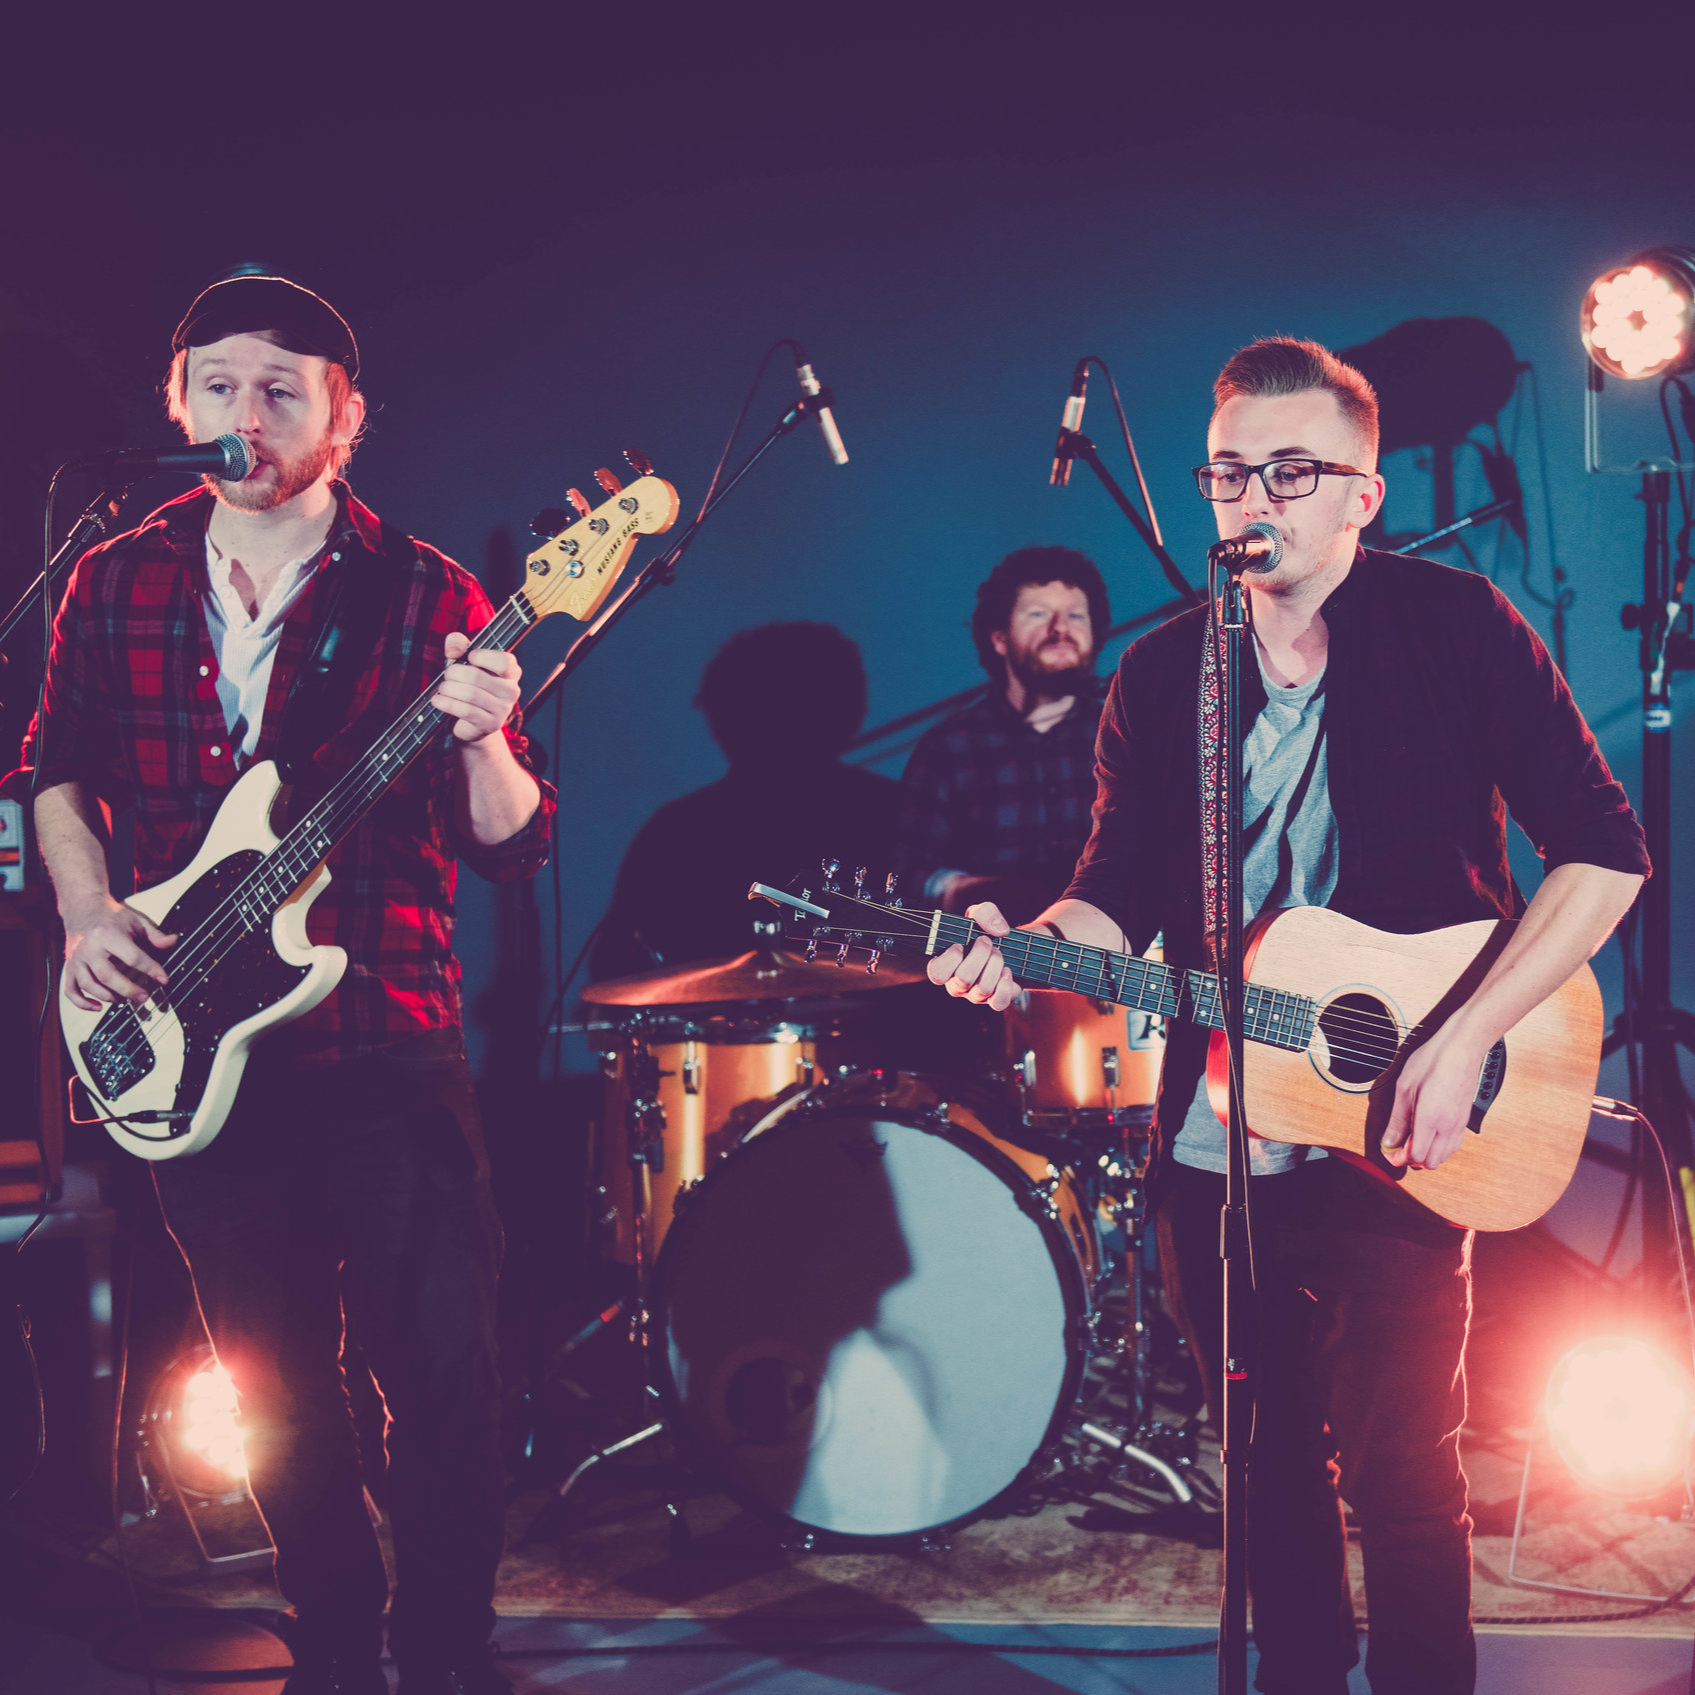 THREE STRIKES - Anglesey-based three piece 'Three Strikes' are bound to get those hands in the air as they bring some Glastonbury festival vibes to your event. Expect to hear the likes of Bruno Mars, Ed Sheeran and Mumford & Sons.